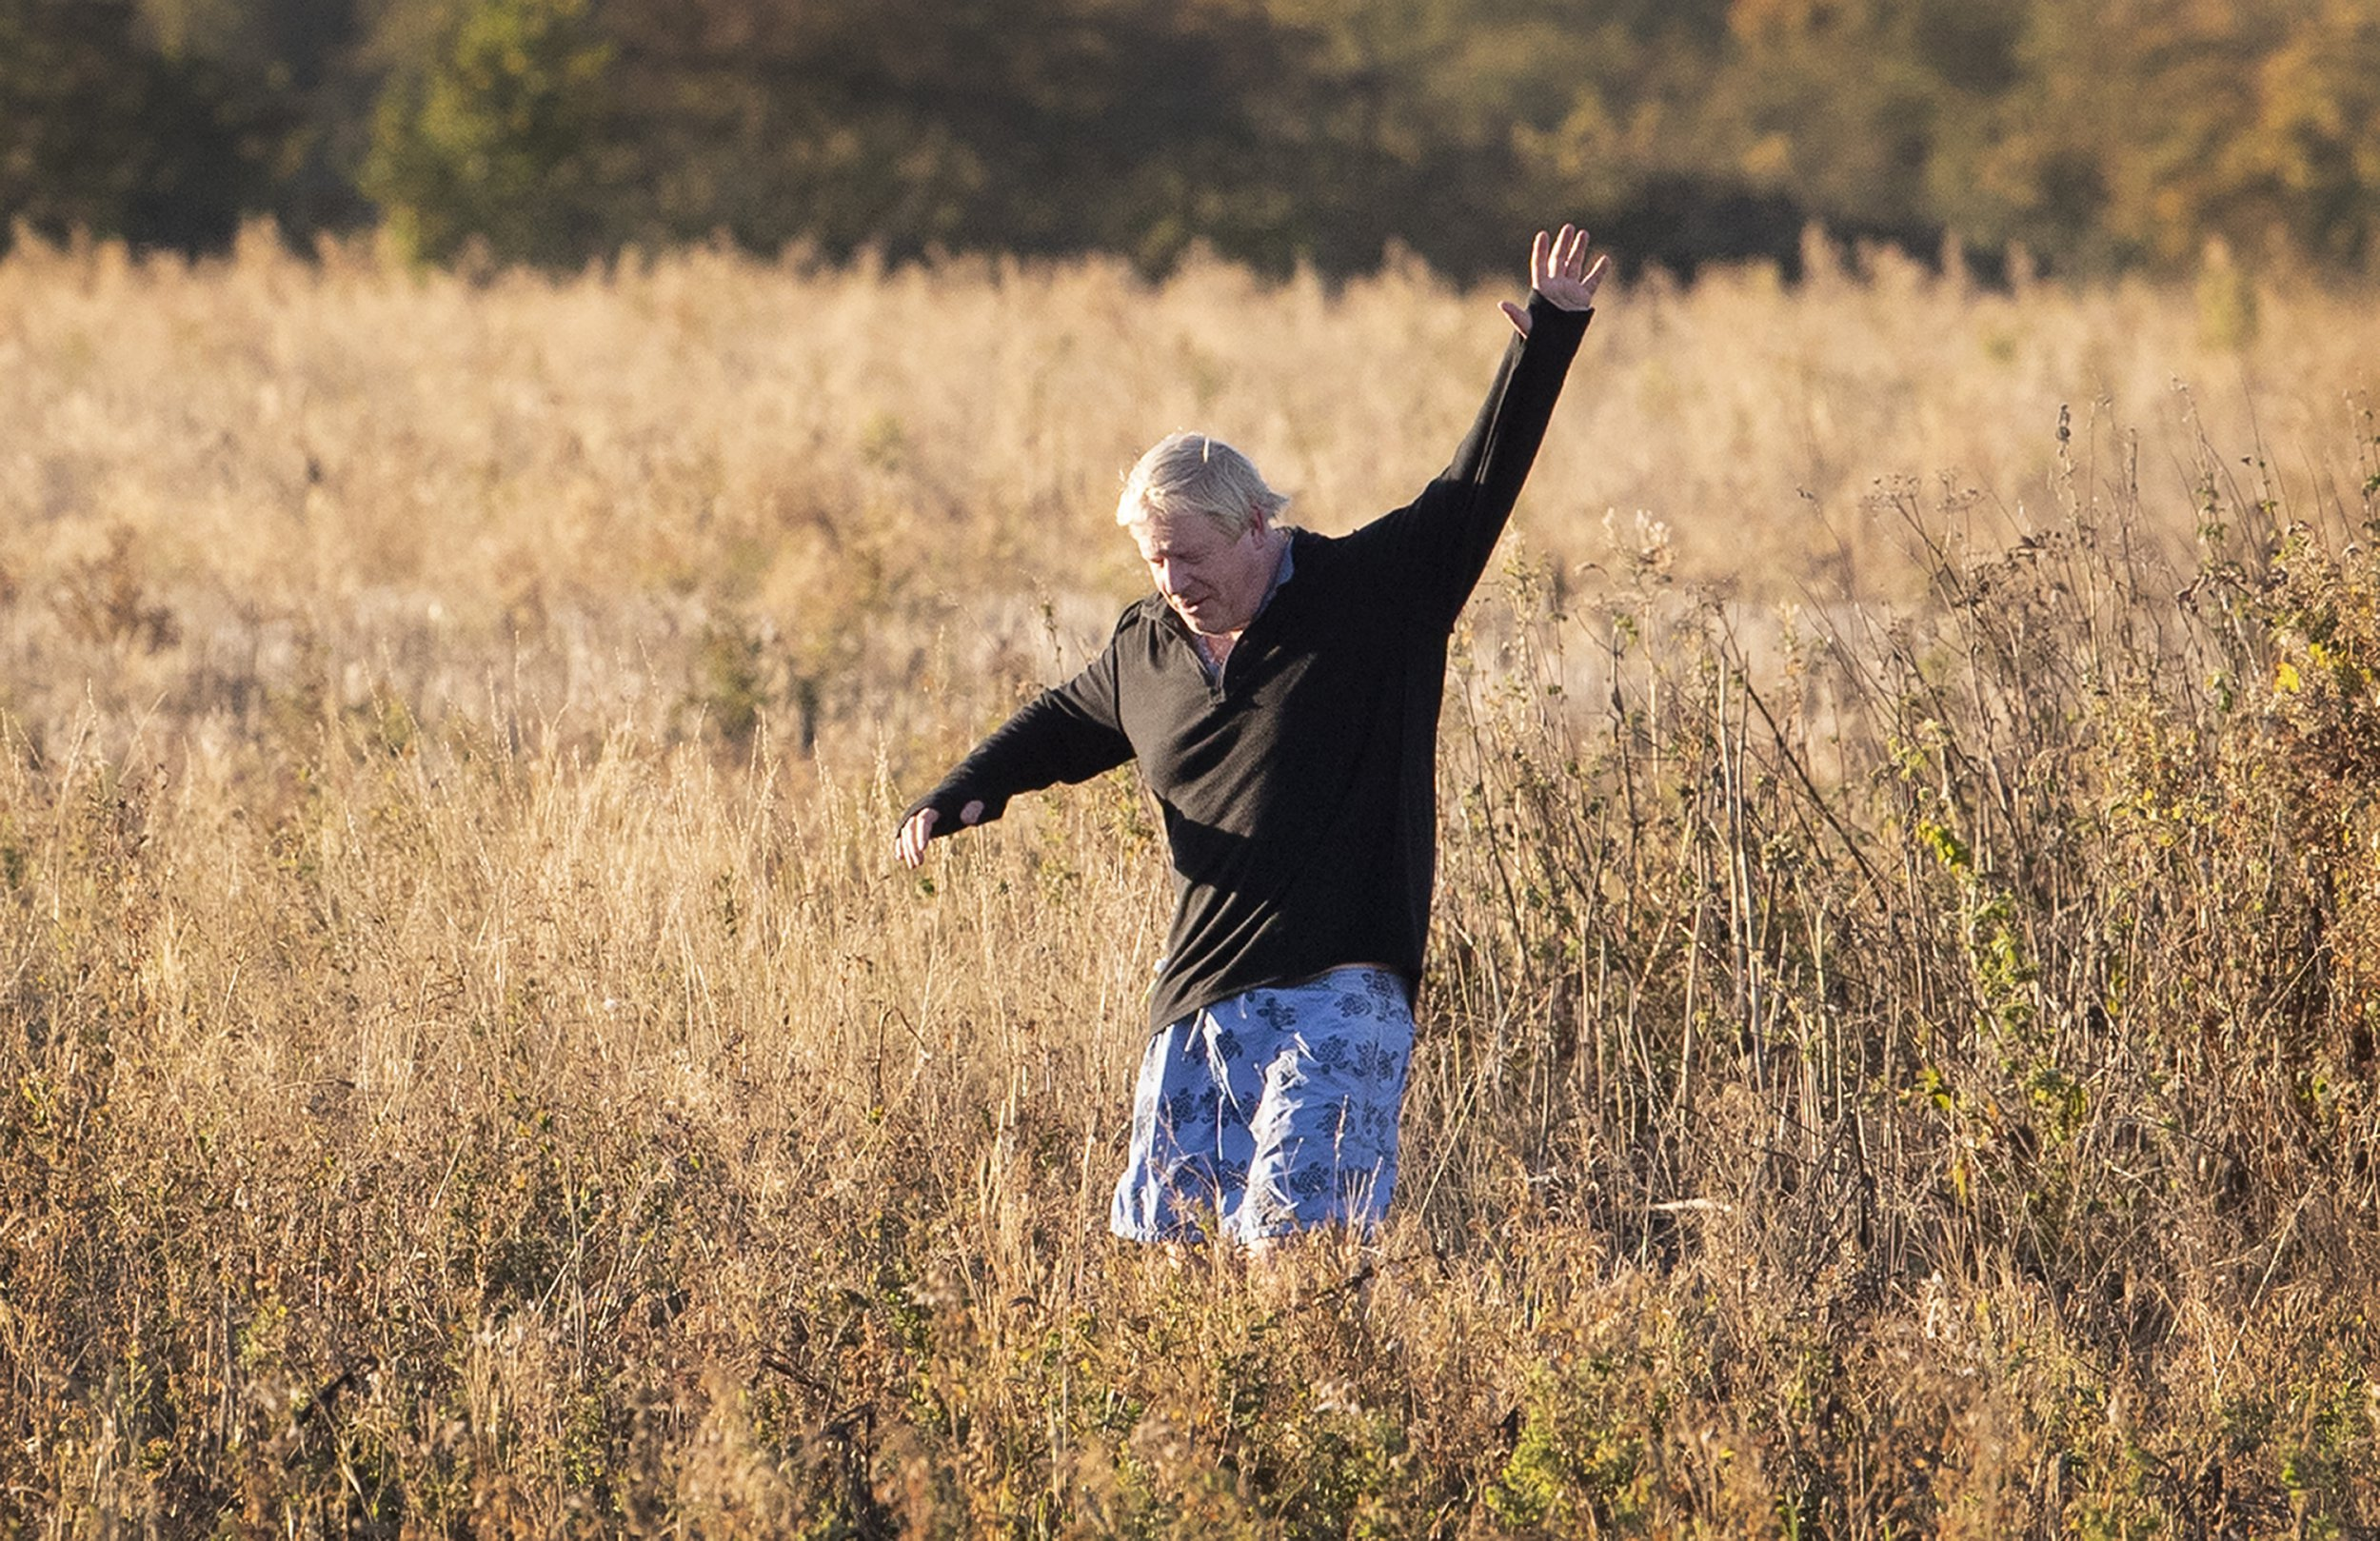 ? Licensed to London News Pictures. 01/10/2018. Thame, UK. Boris Johnson waves at photographers as he runs near his Oxfordshire home. The former foreign secretary is due to attend Conservative Party Conference this week. Photo credit: Peter Macdiarmid/LNP